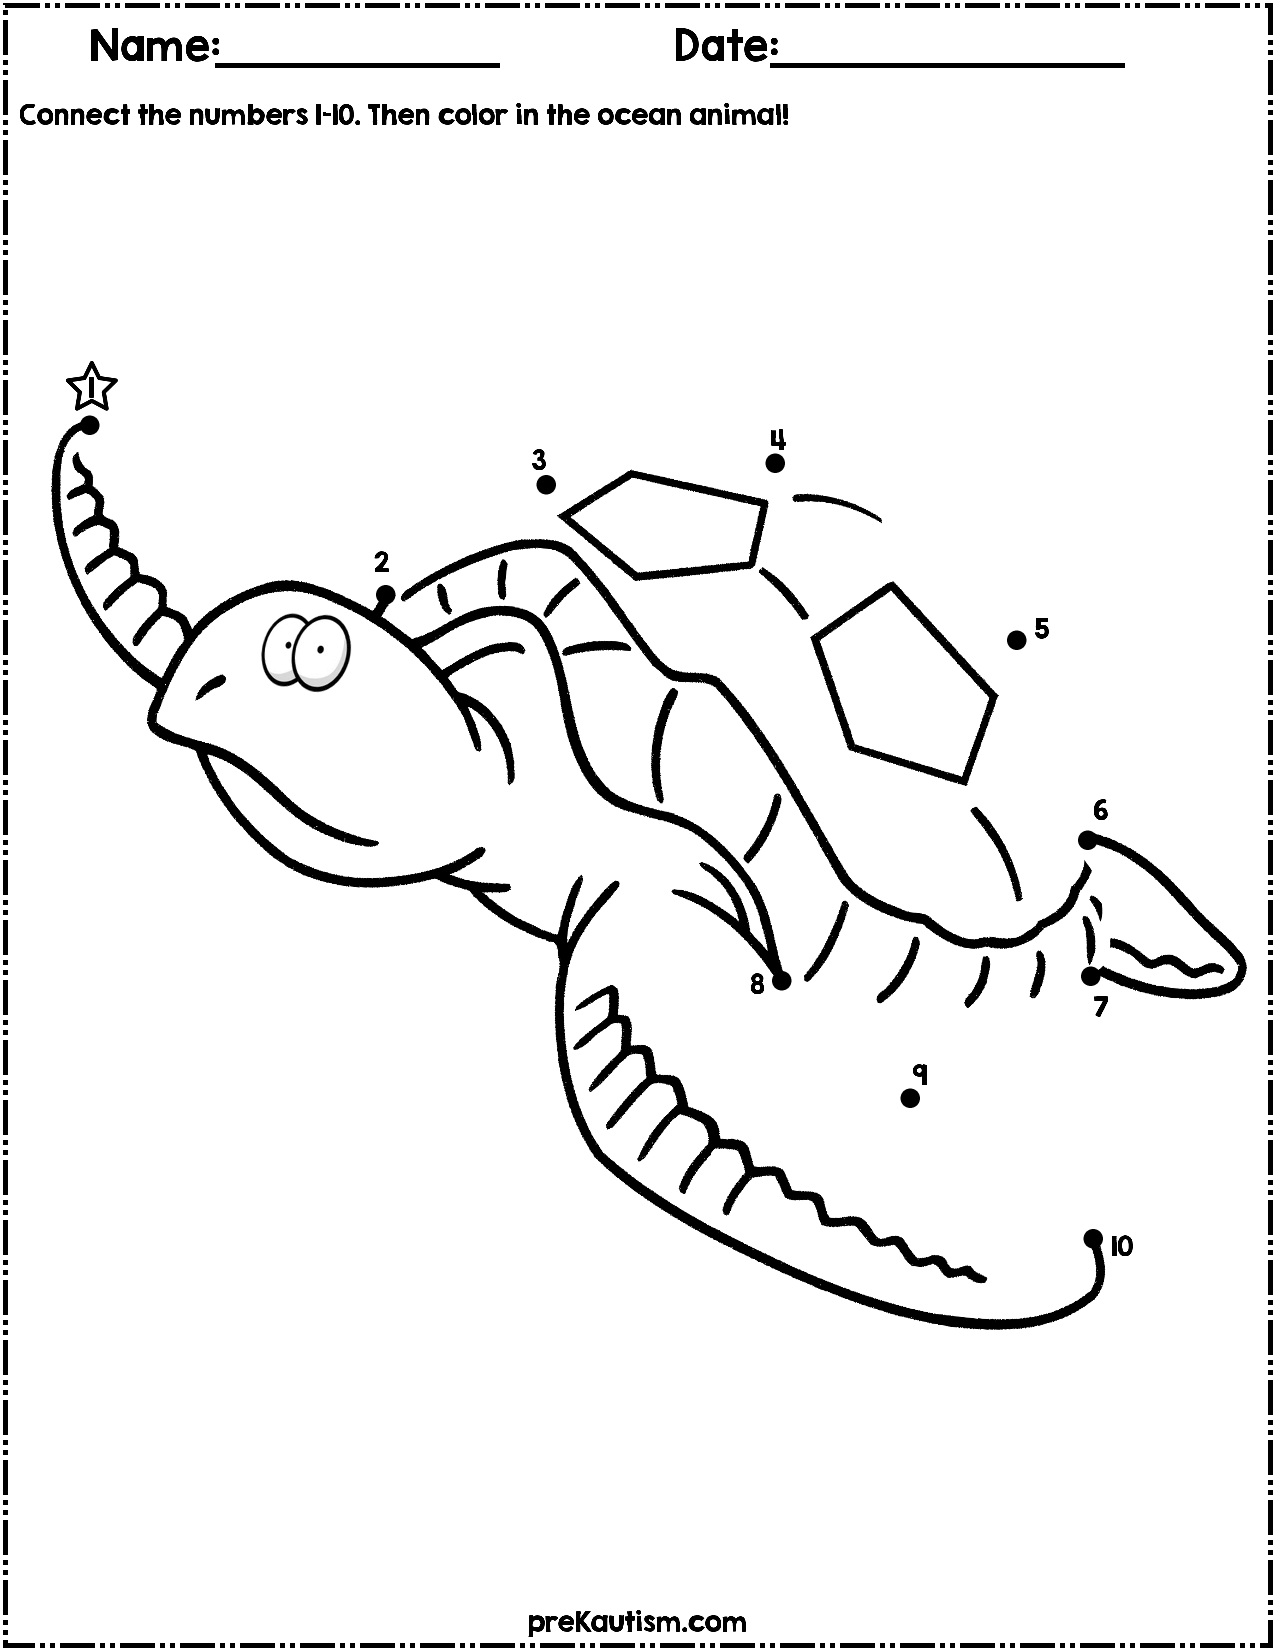 Ocean Animals Dot To Dot Worksheets Numbers 1 10 School Stuff